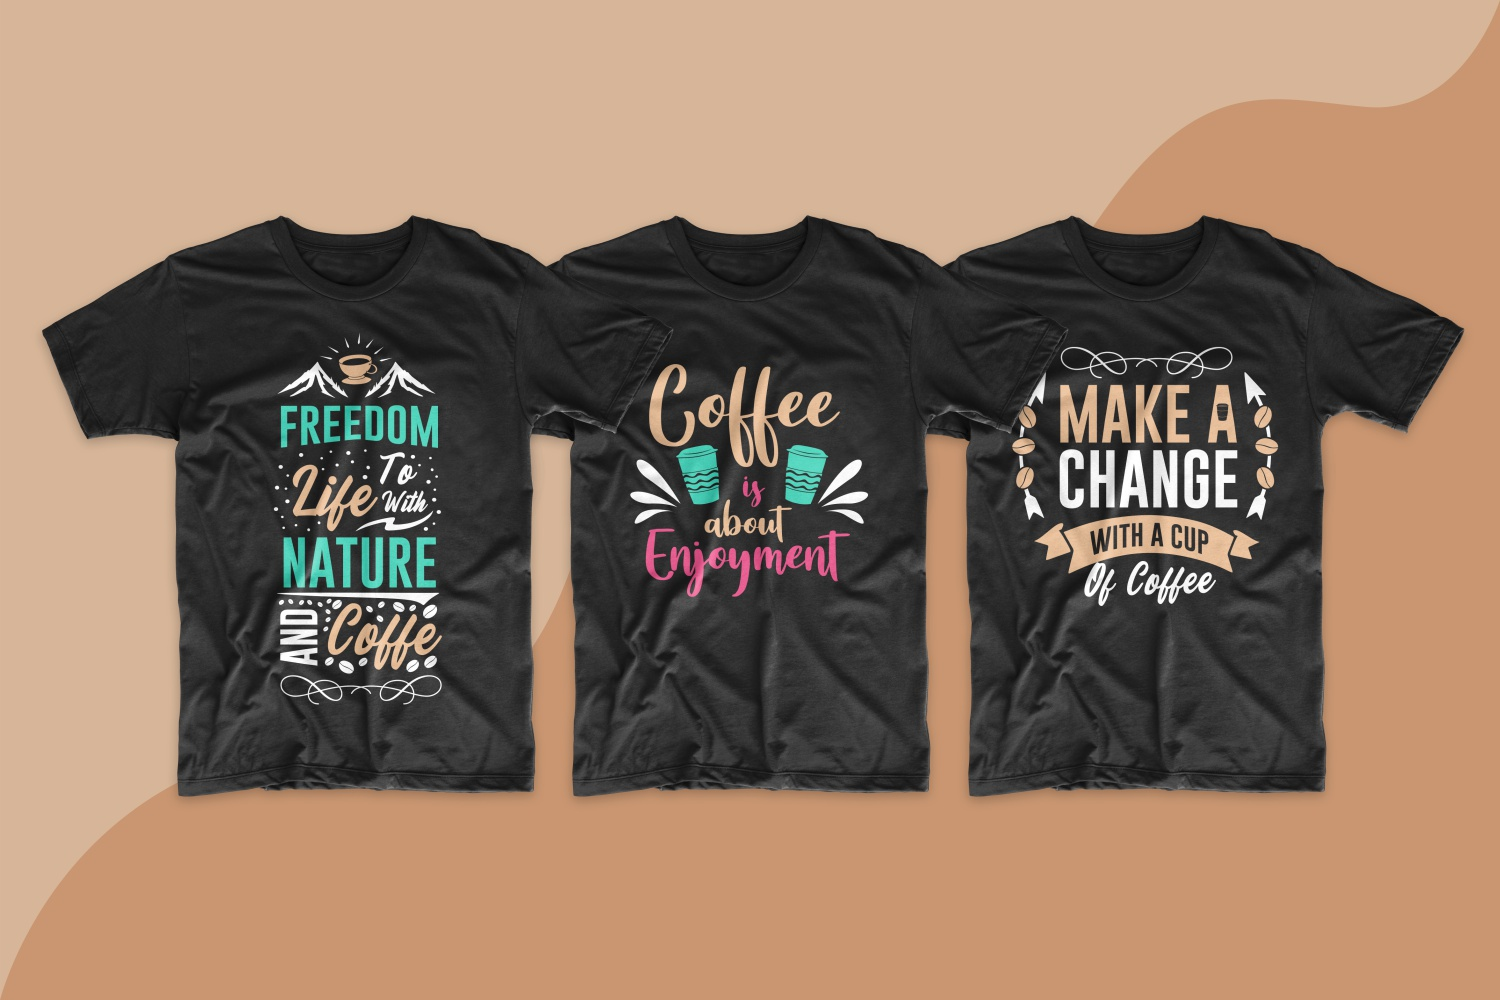 T-shirts completely filled with inscriptions about coffee and coffee lovers.